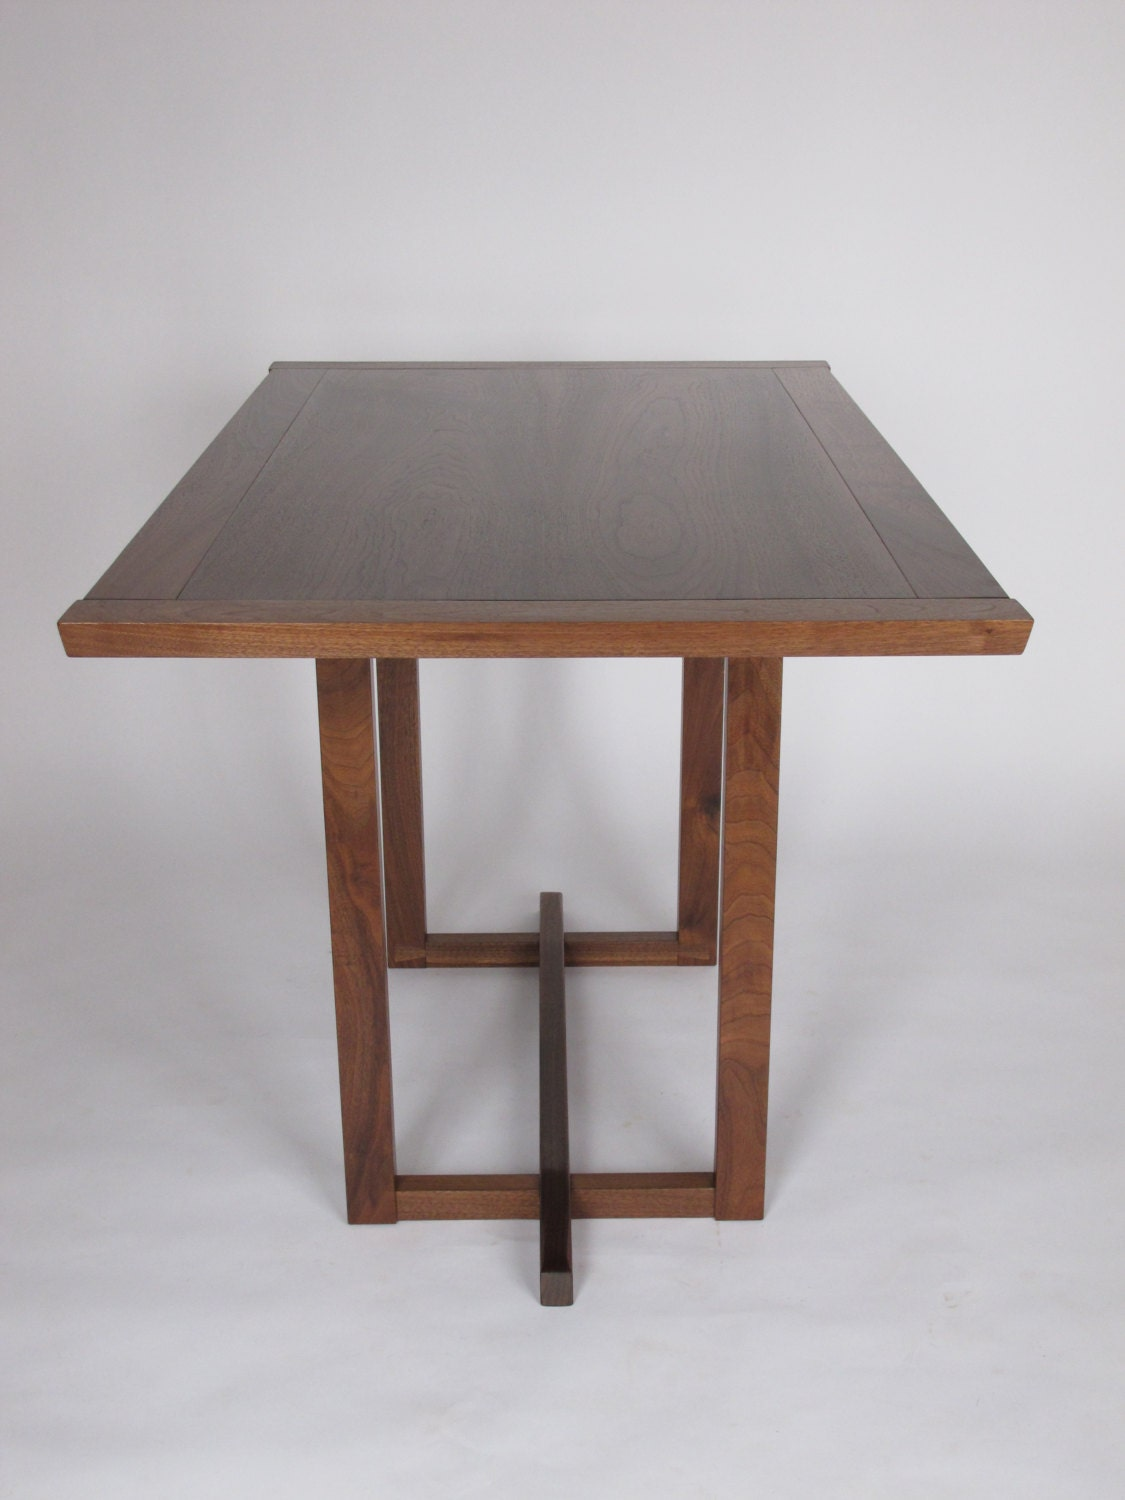 Narrow Dining Table For A Small Dining Room By MokuzaiFurniture